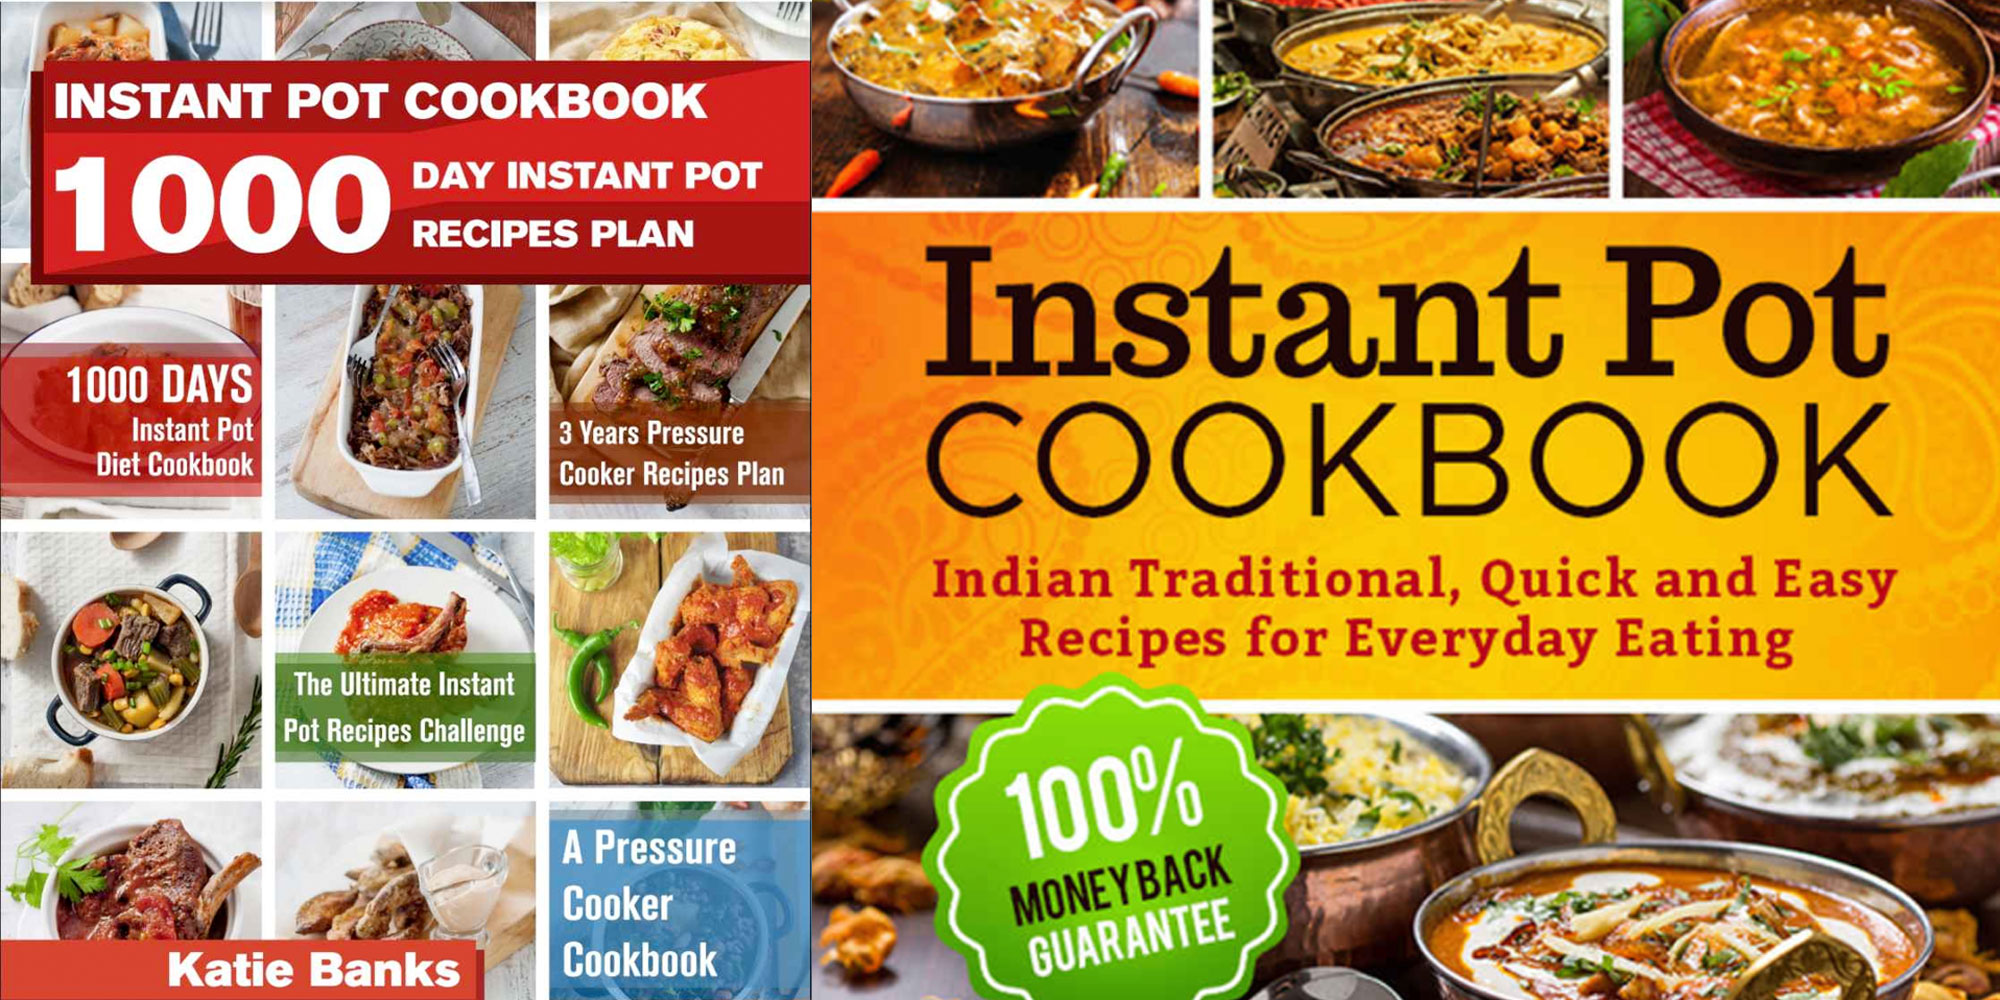 These Instant Pot cookbooks have over 1,000 recipes for FREE on Kindle